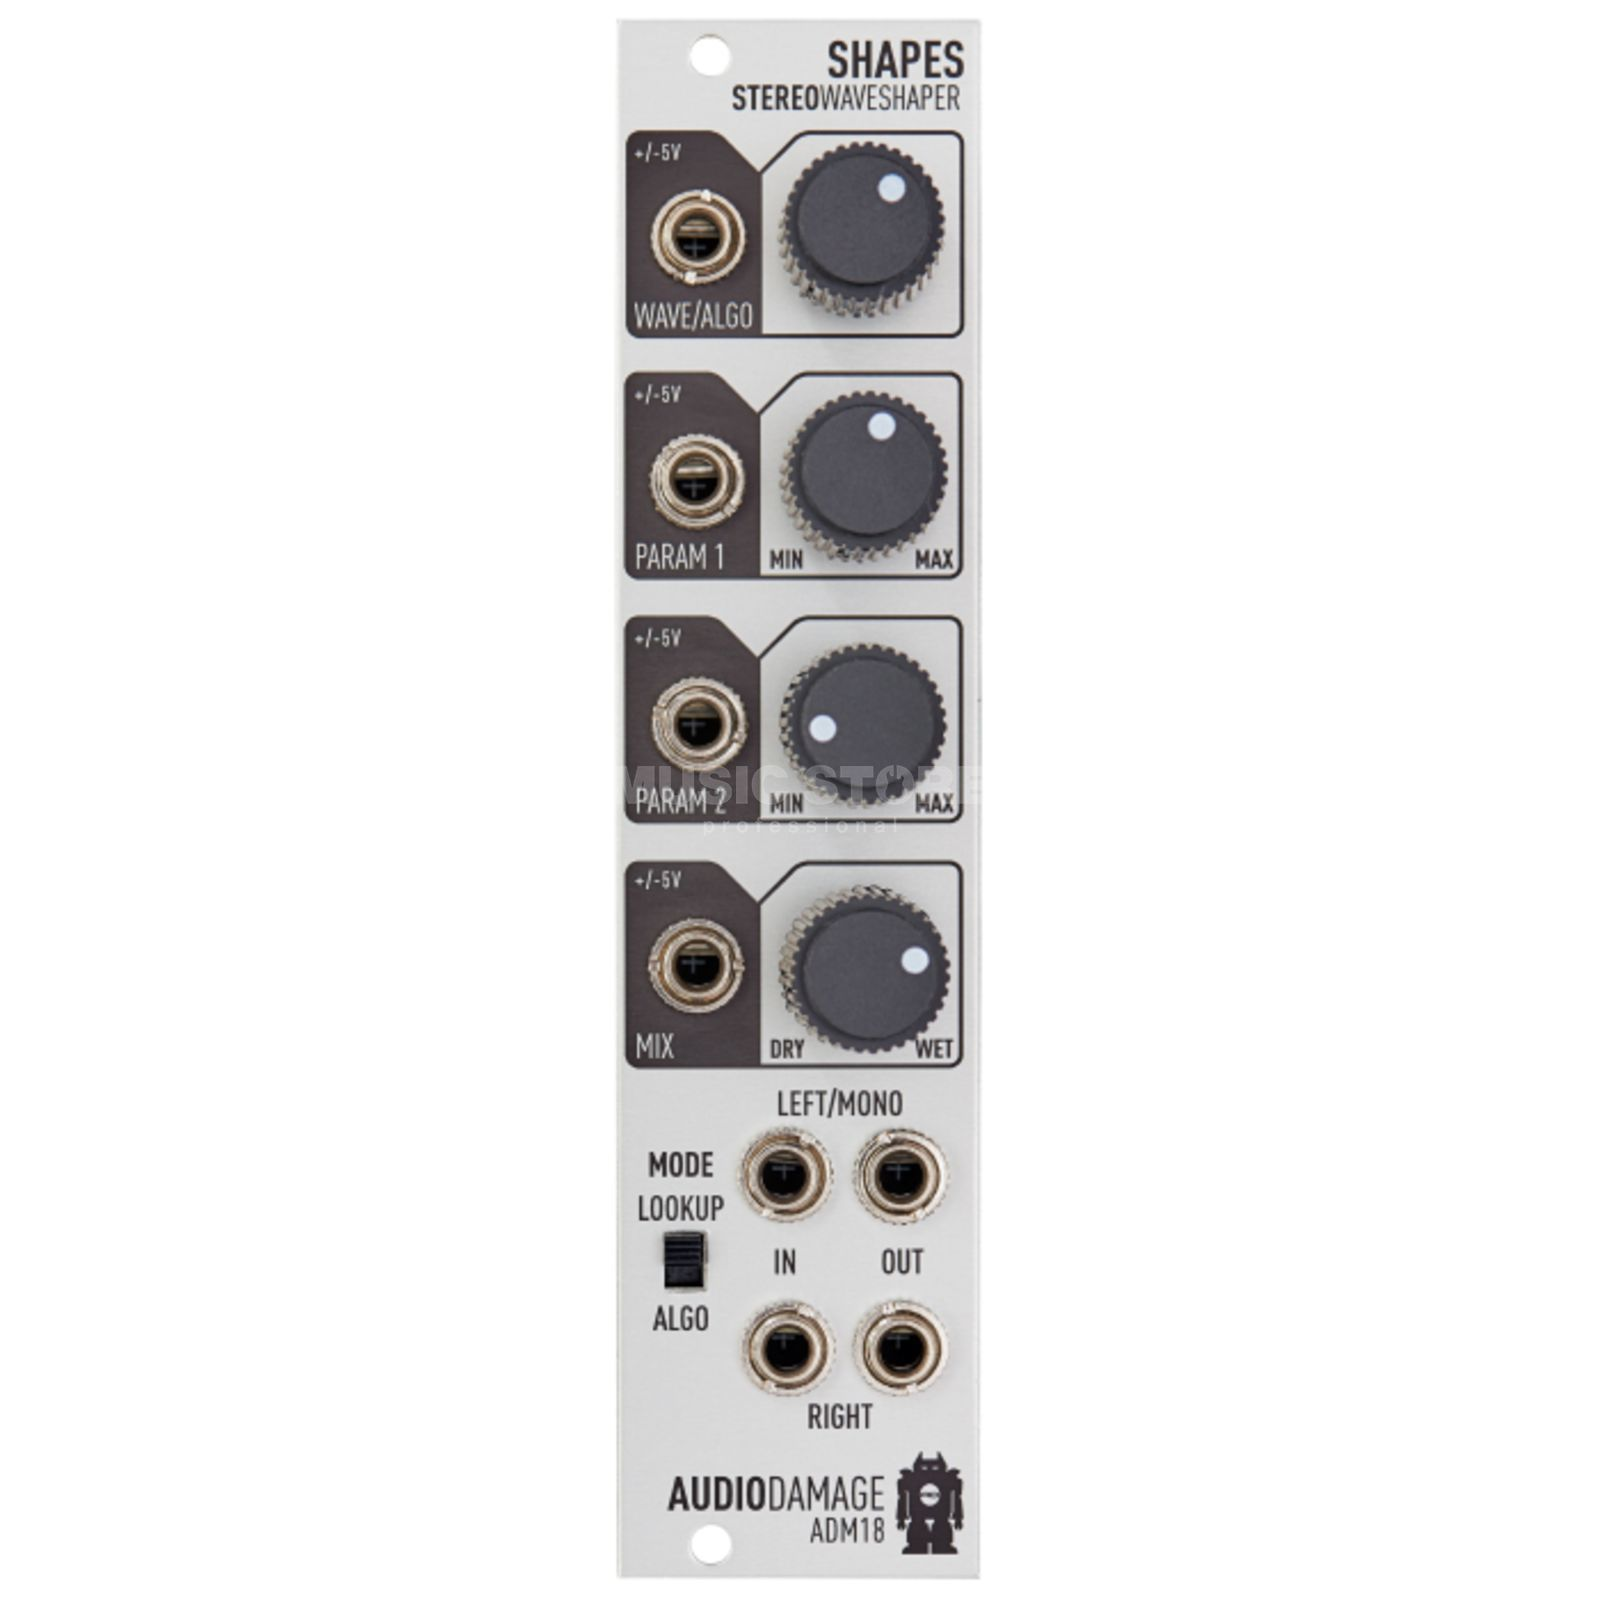 Audio Damage ADM18 Shapes Produktbild